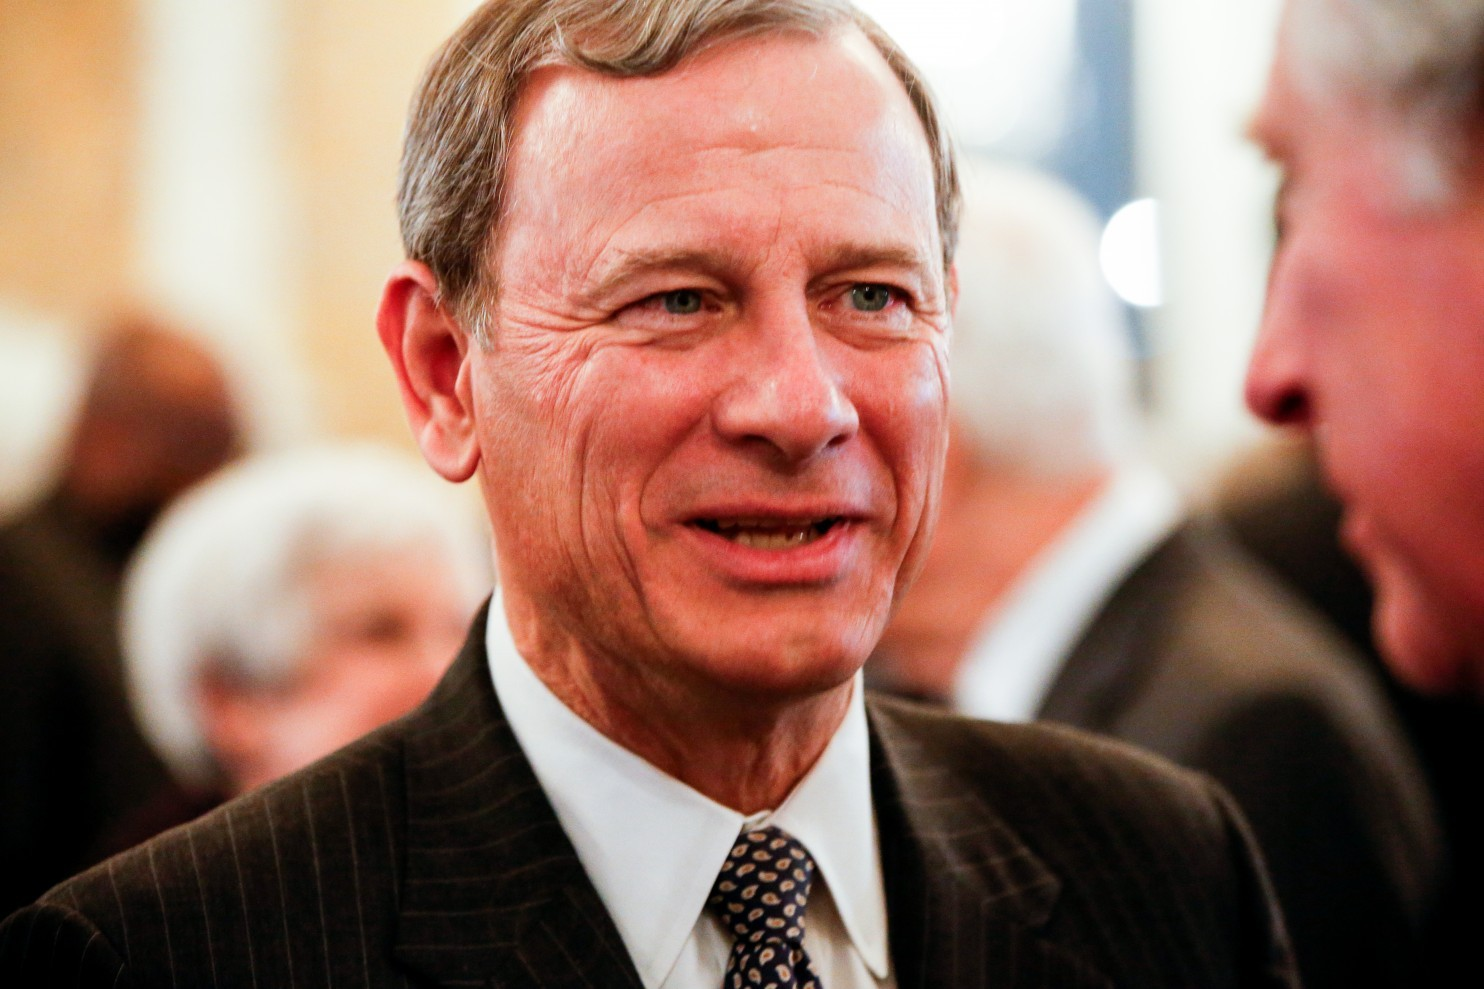 john g roberts The latest tweets from john g roberts (@johnroberts_cj) chief justice of the united states supreme court.